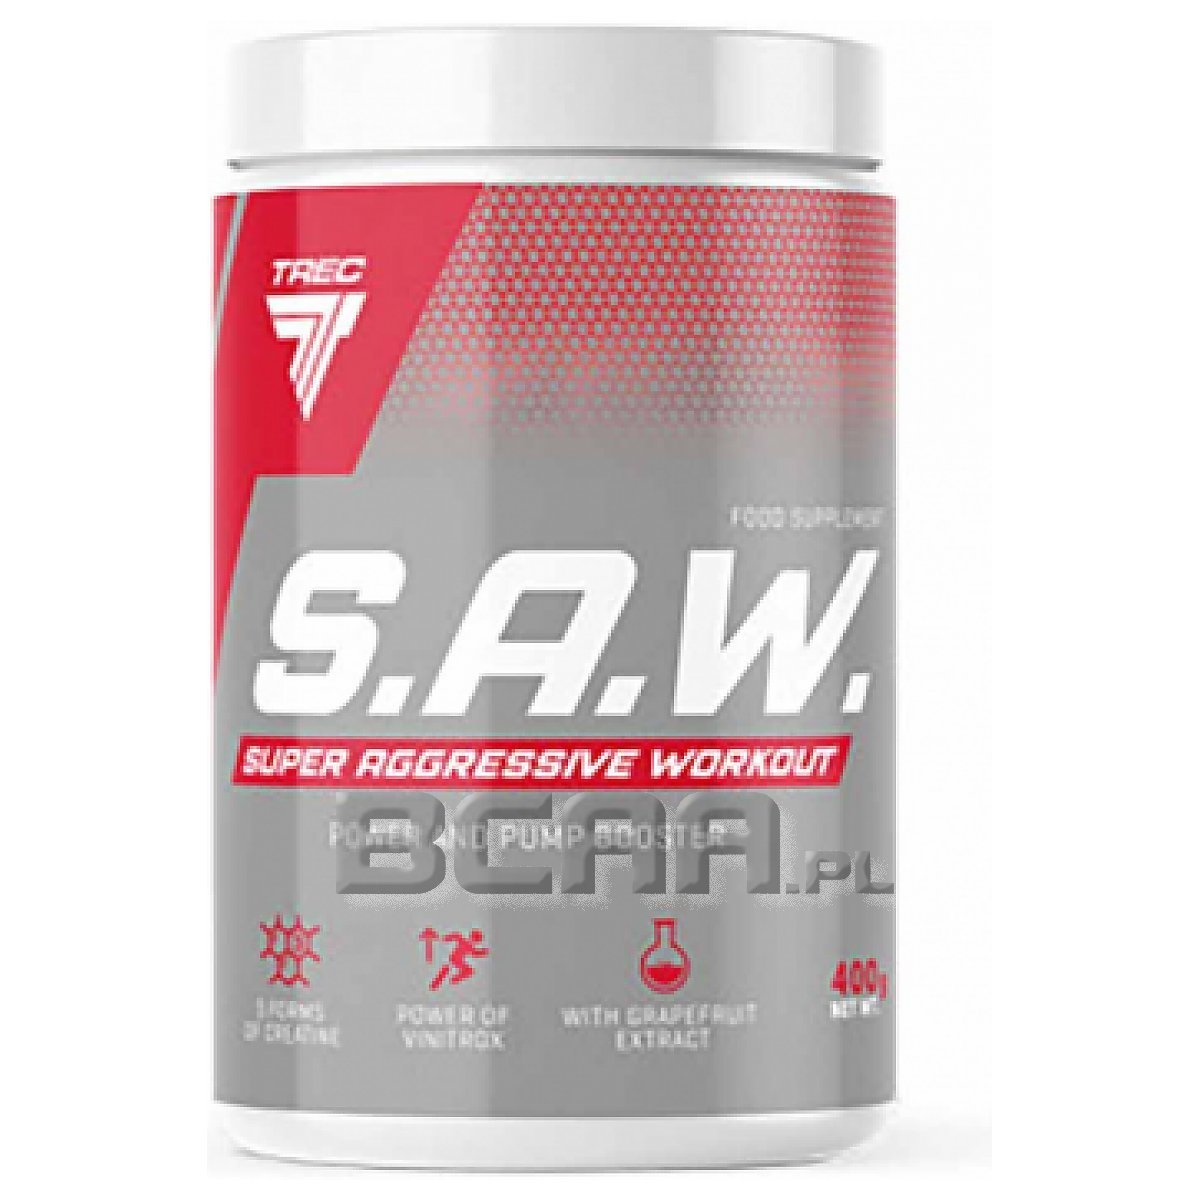 saw super anabolic workout nebenwirkung